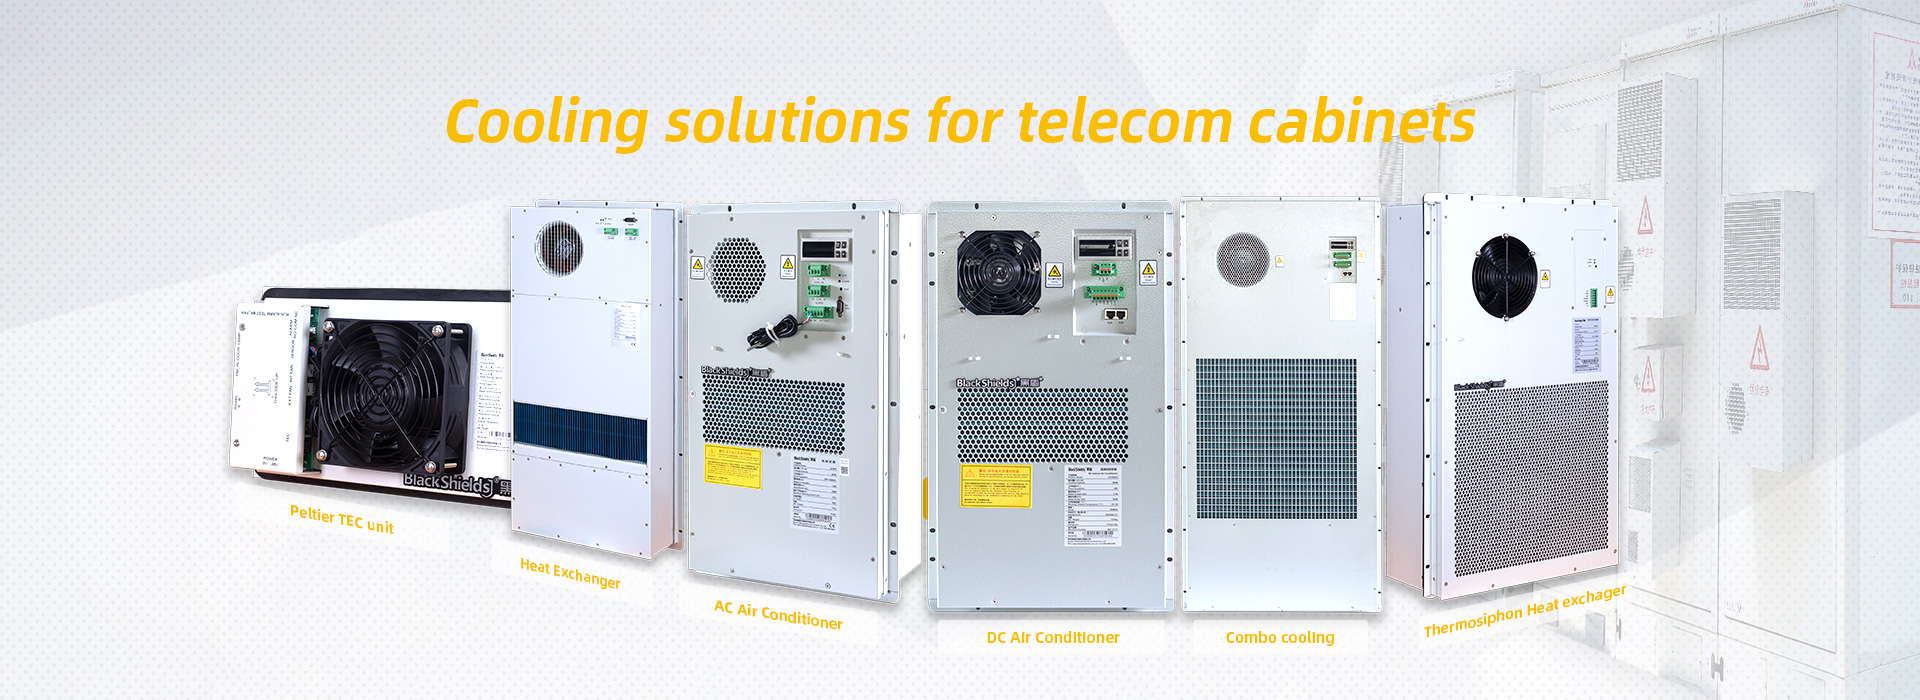 Cooling solutions for telecom cabinets